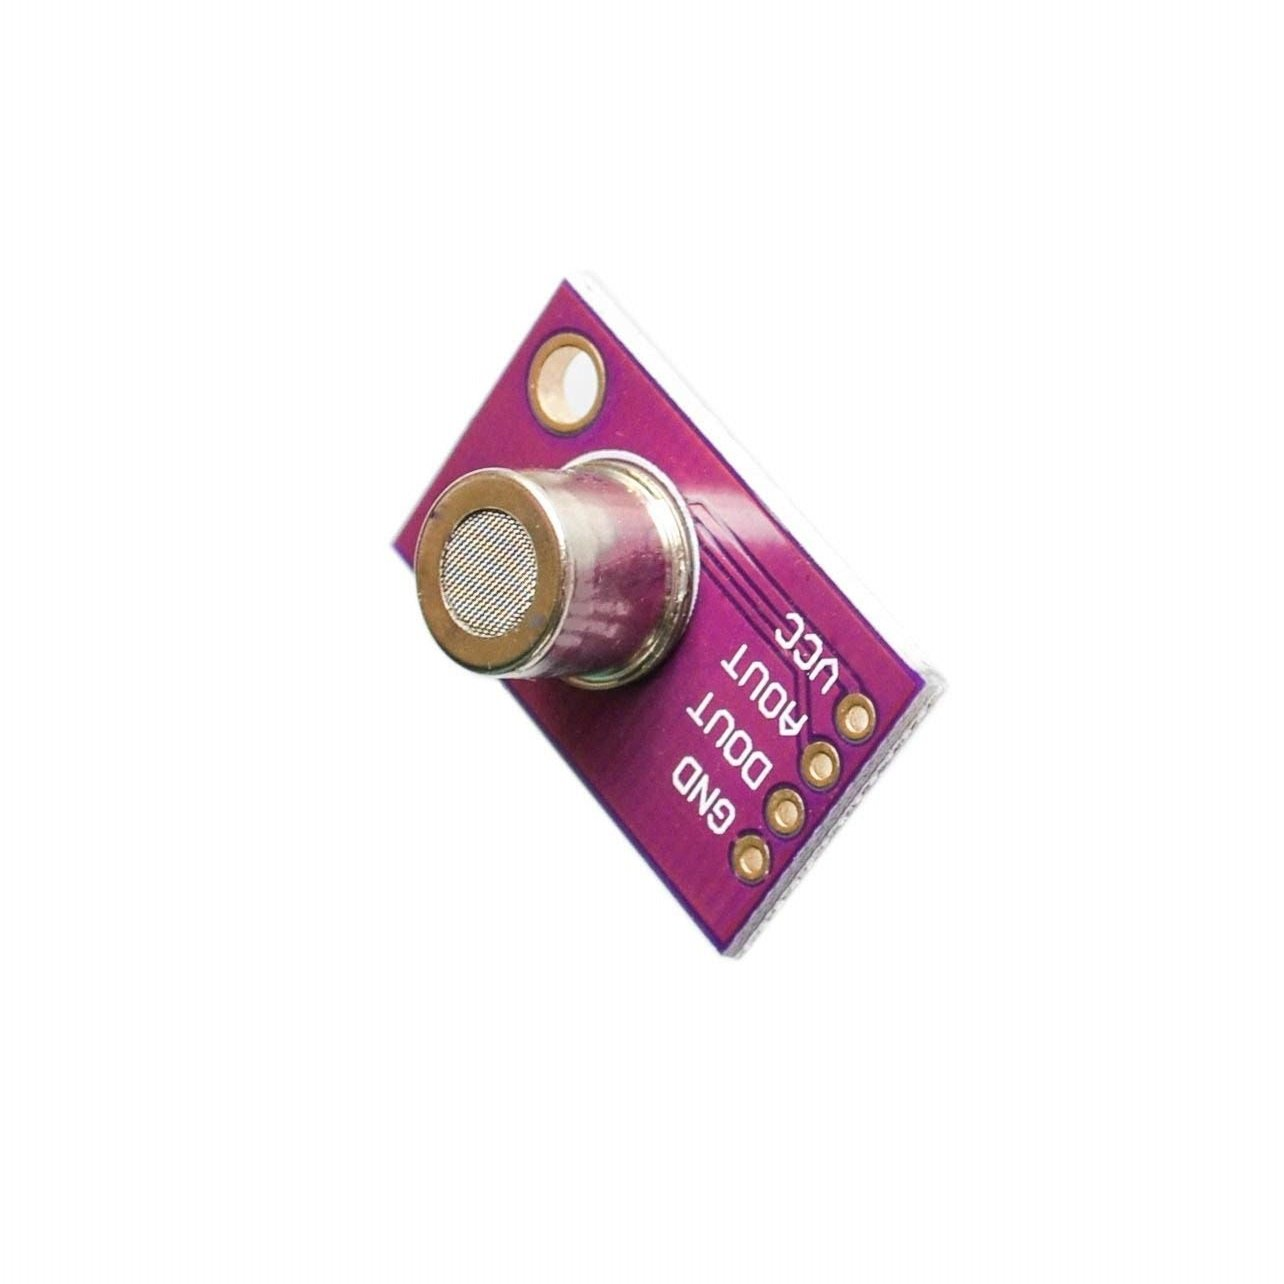 SMAKN MS1100 MS-1100 VOC Gas Sensor Module Formaldehyde Benzene Concentration Gas Induction 100mA Breakout for Arduino